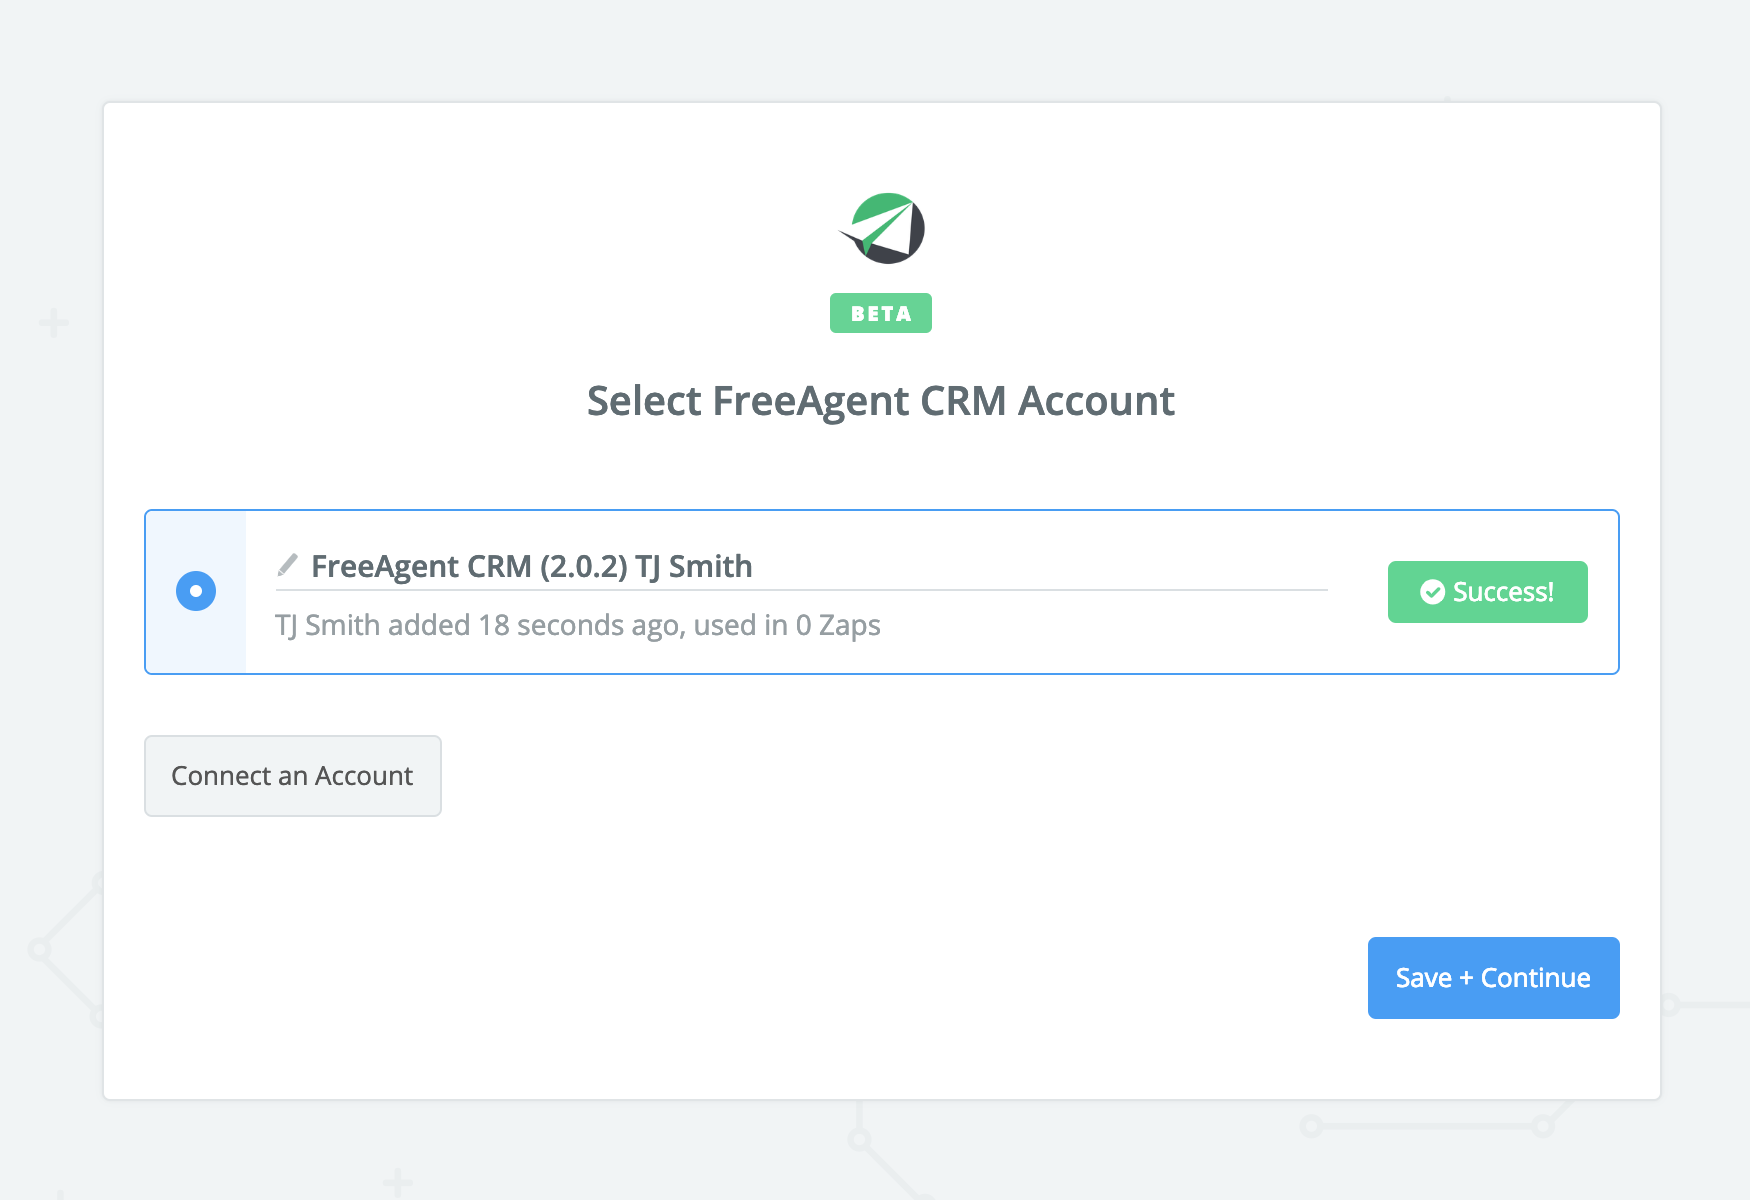 FreeAgent CRM connection successfull